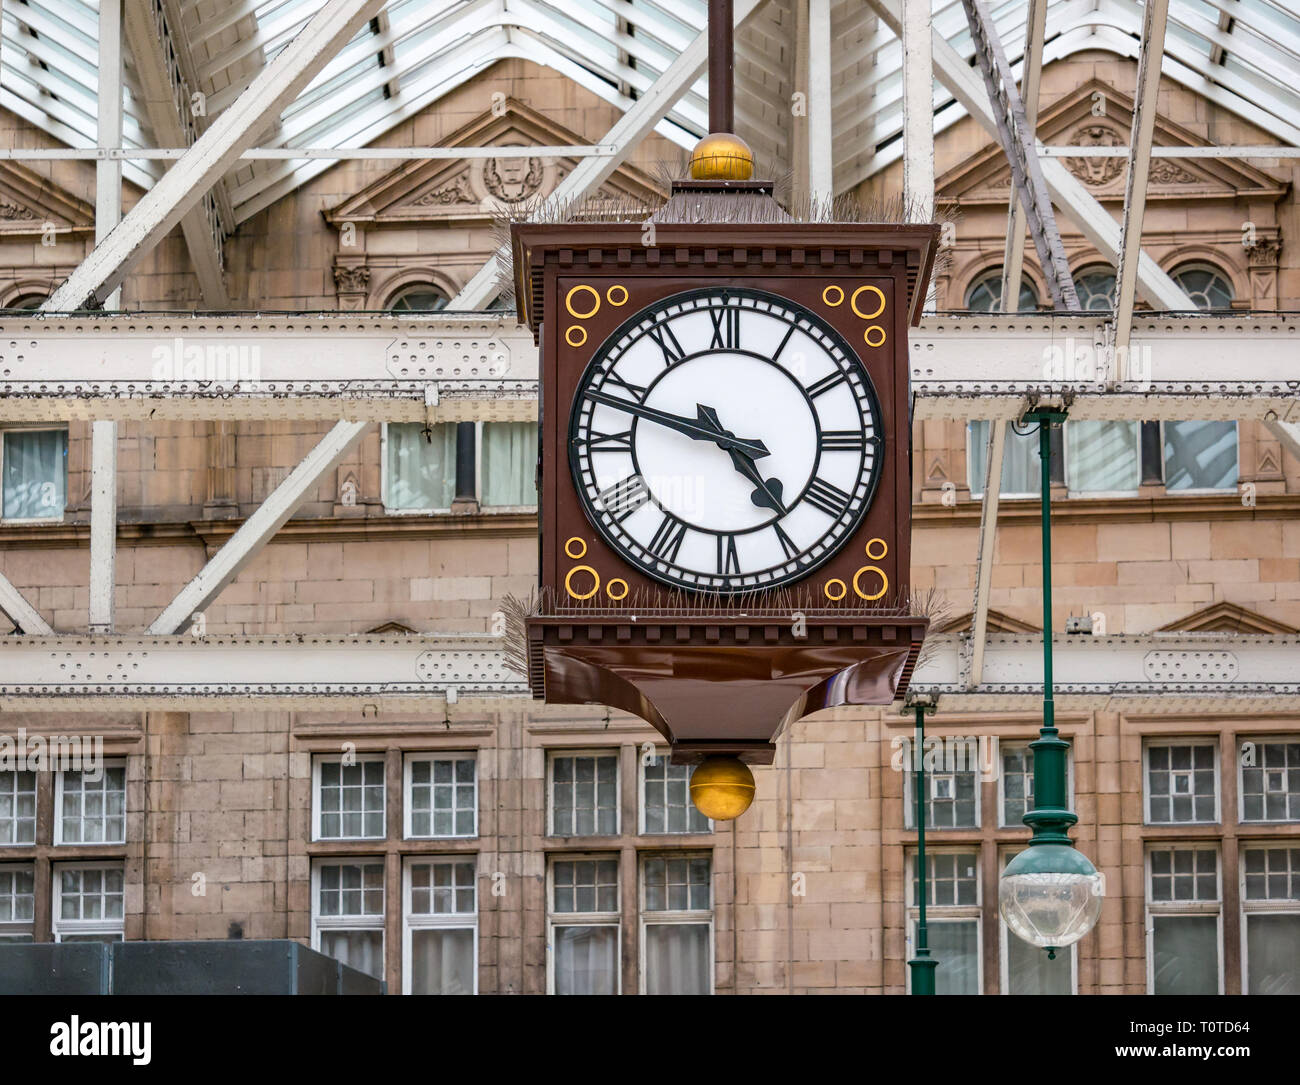 Well known meeting spot, Victorian clock on concourse of Glasgow Central Station, Scotland, UK - Stock Image